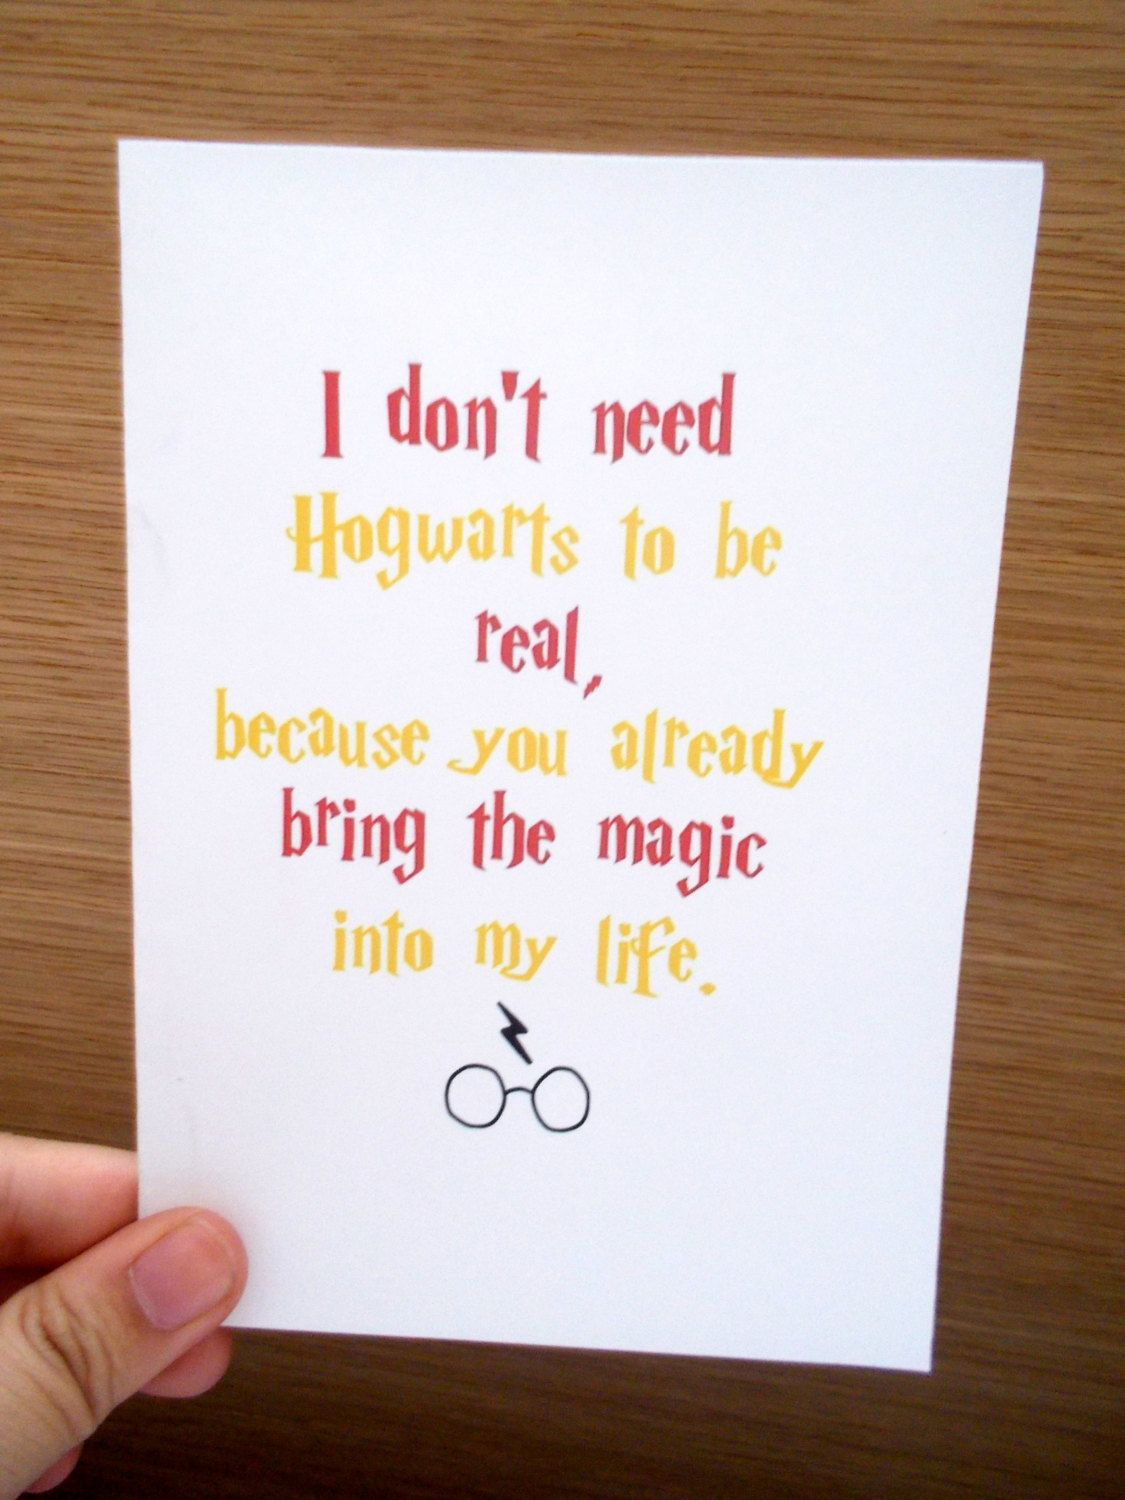 Harry Potter Quote About Friendship Harrypottergreetingcardmagicbirthdaybythemessengerbear$